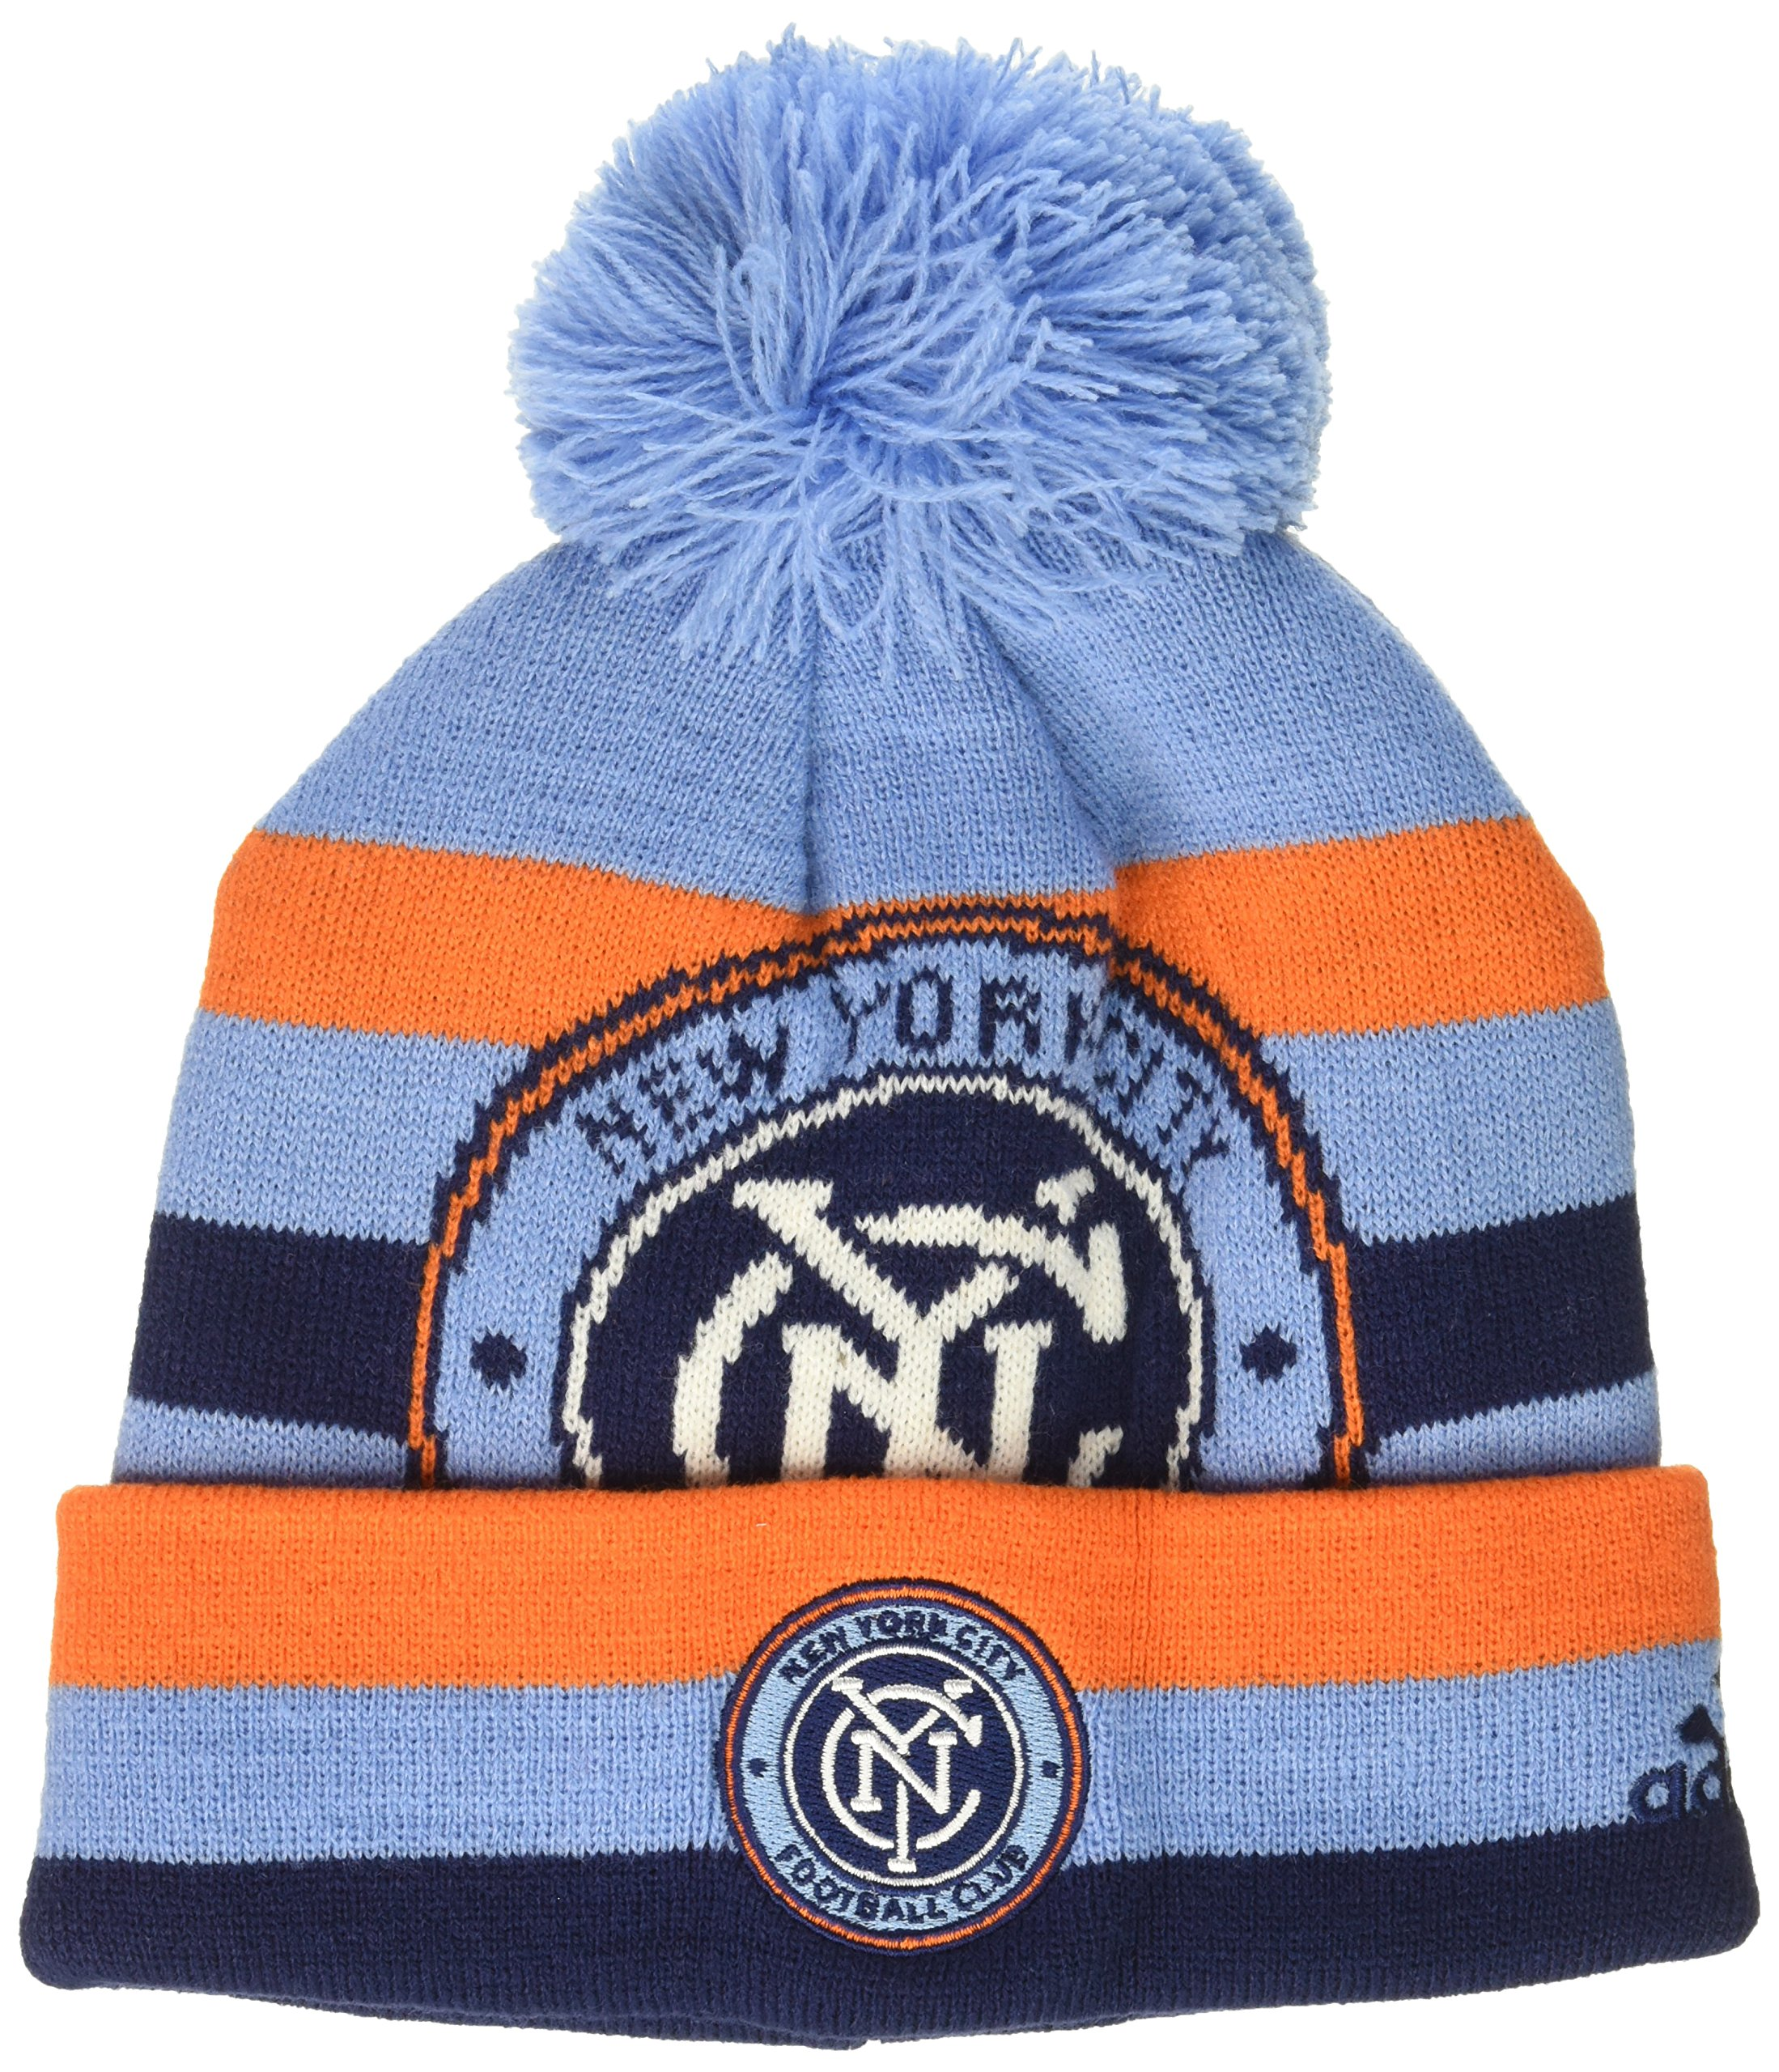 MLS NYCFC R S8FDS Youth Boys Cuffed Knit Hat with Pom, One Size (8), Bahia Blue